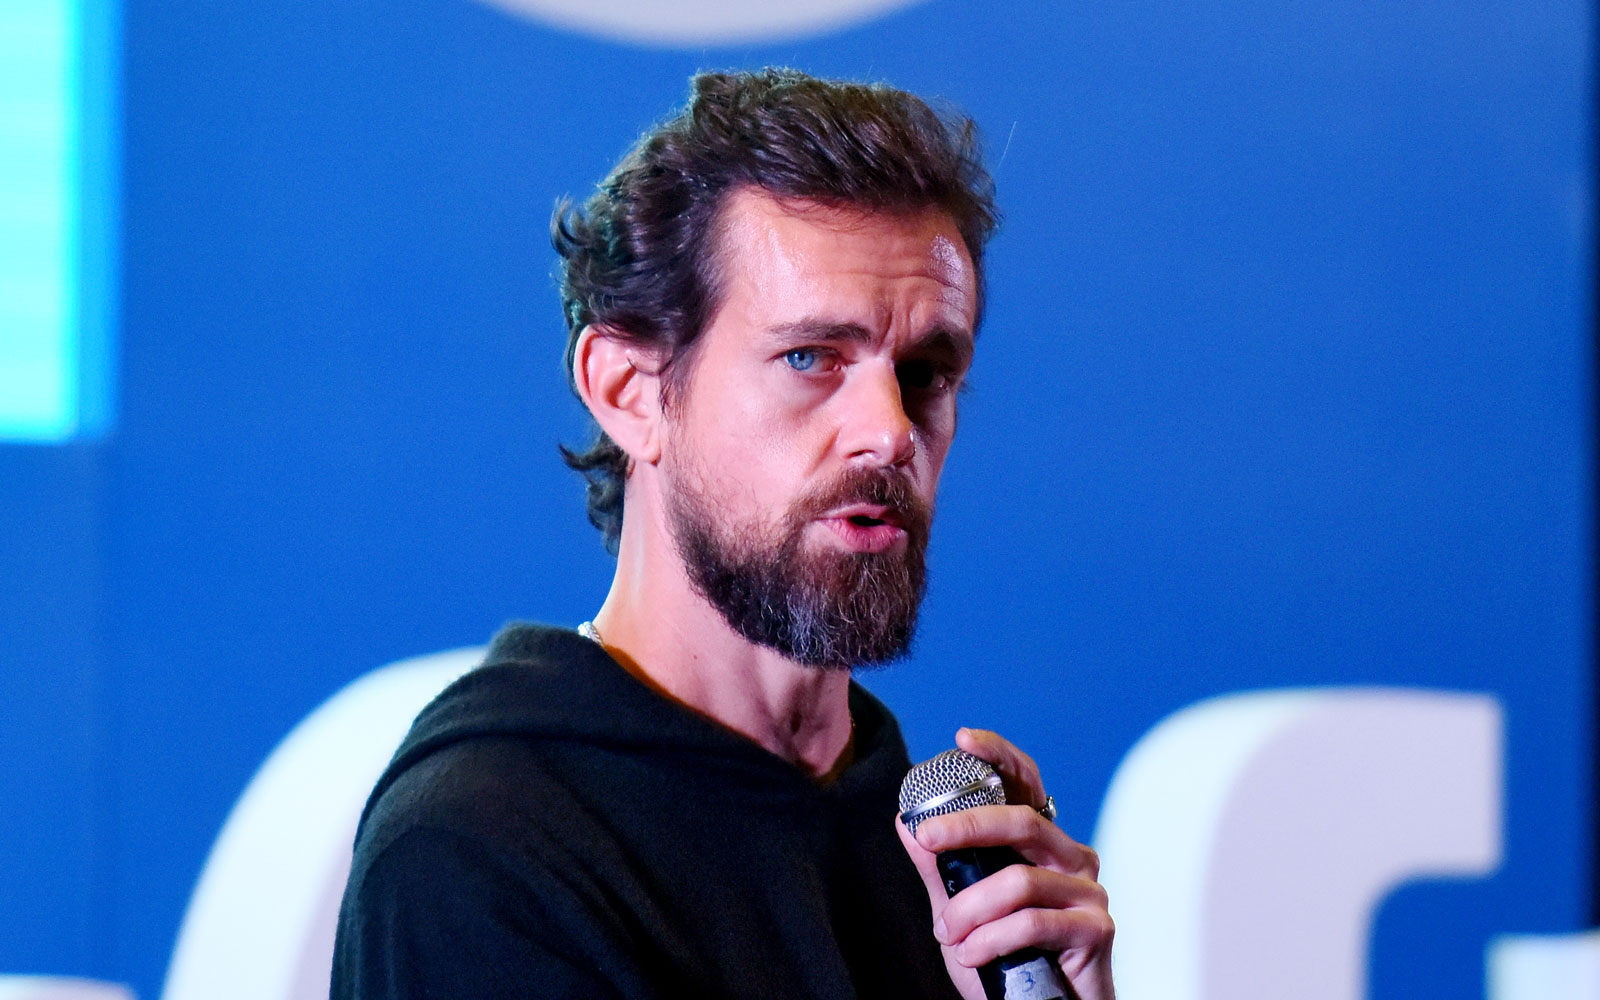 Twitter CEO Jack Dorsey Uses $1 Billion of His Own Wealth to Create Coronavirus Relief Fund